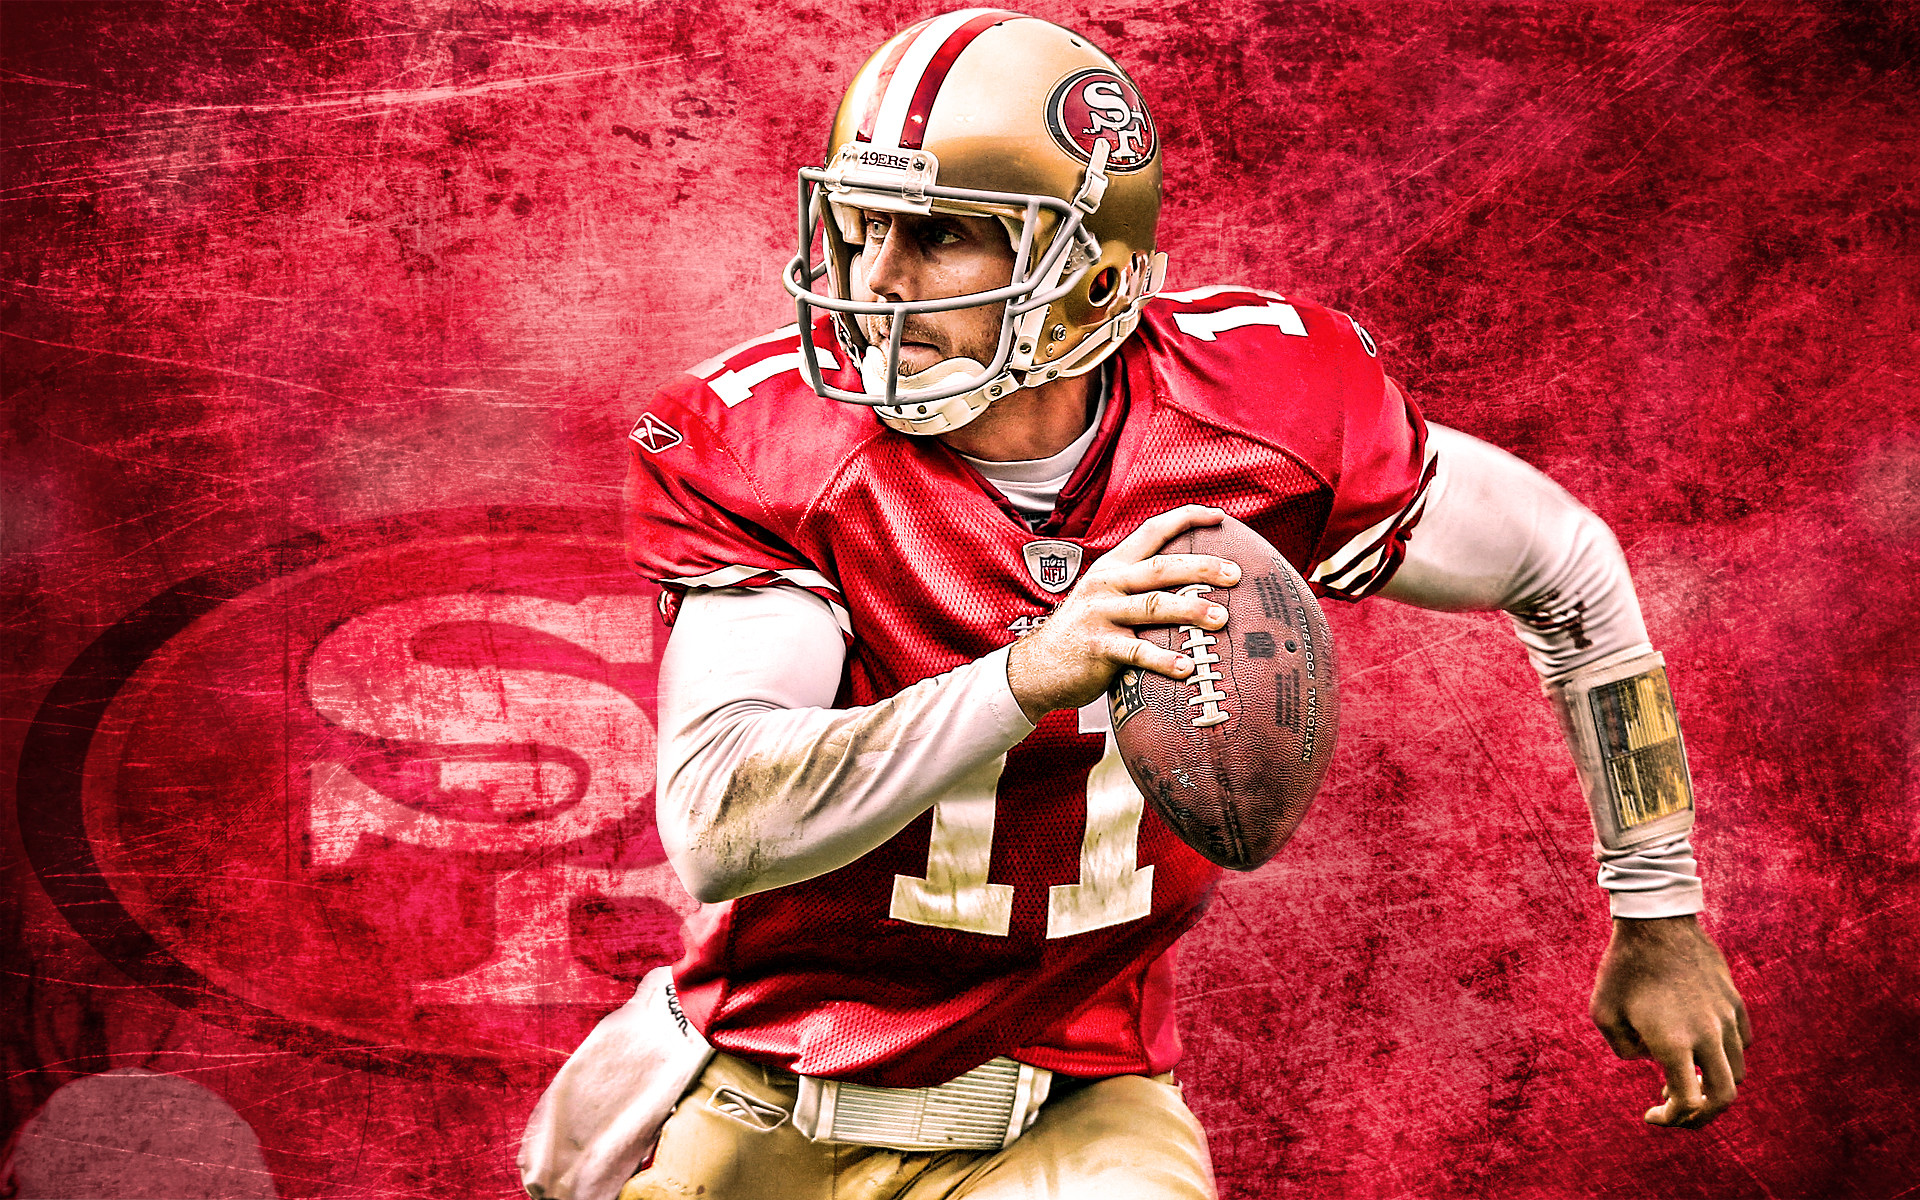 Great Colin Kaepernick Images Wallpaper Amazing free HD 3D wallpapers collection-You can download best